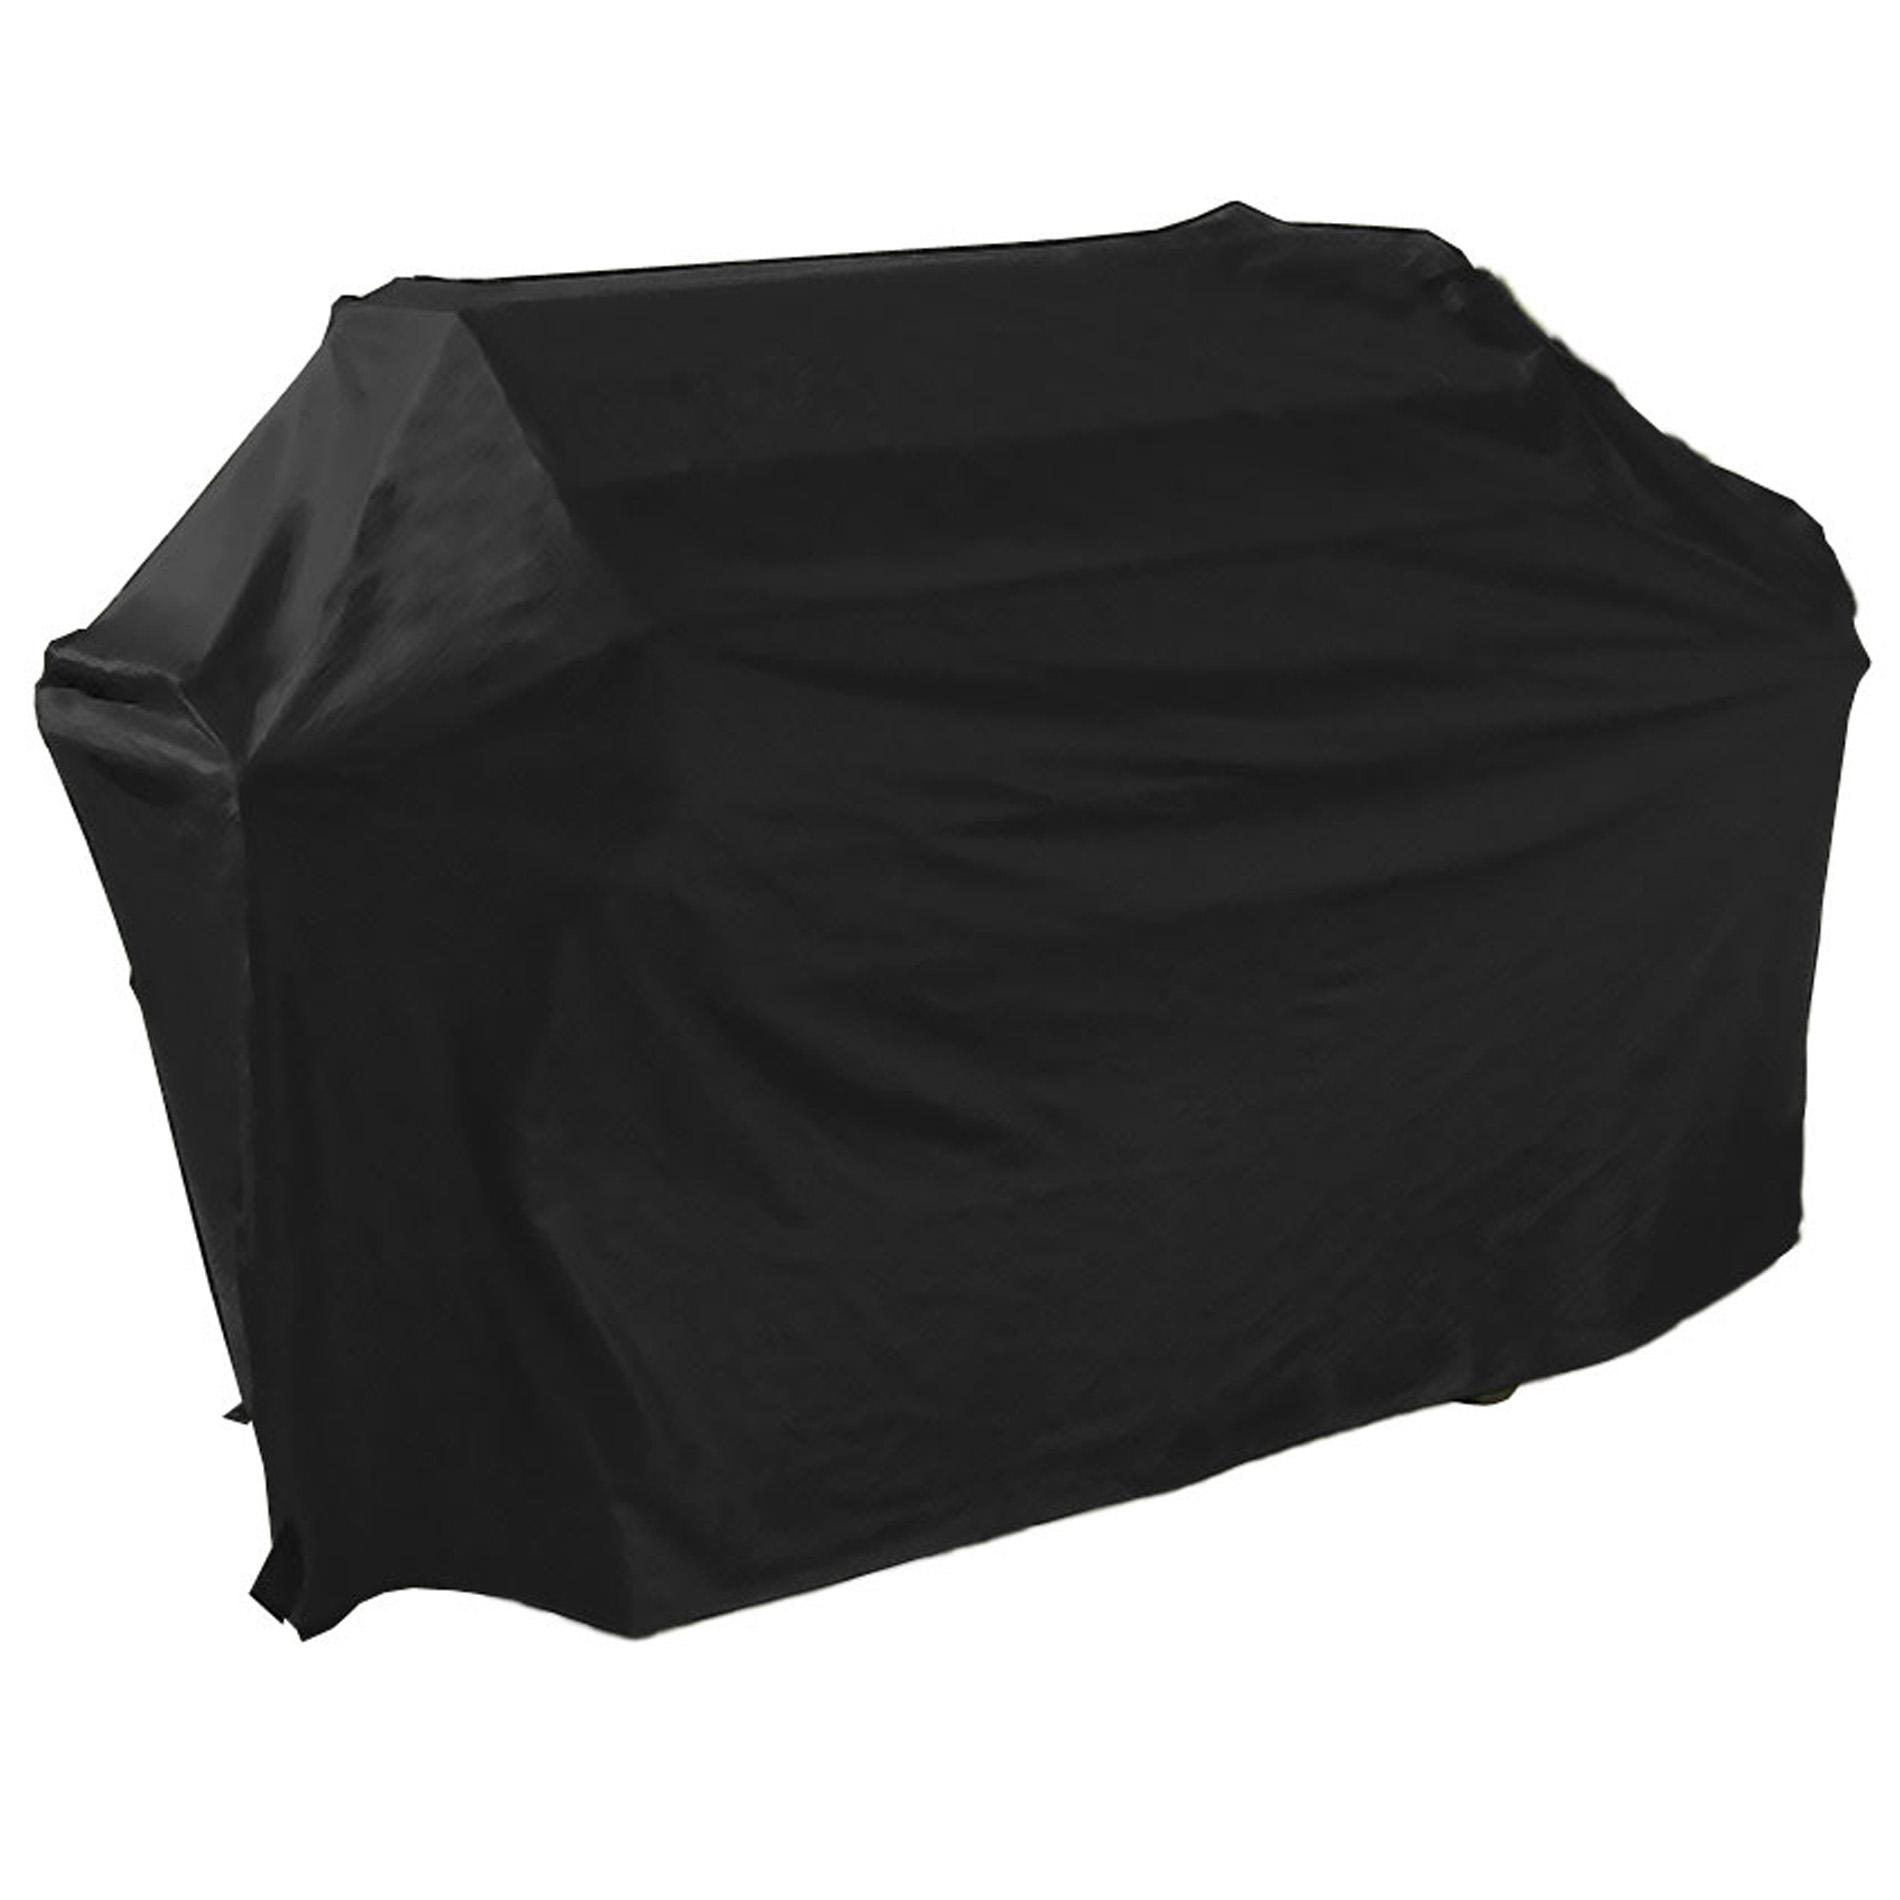 Mr. BBQ Large 75-inch Grill Cover